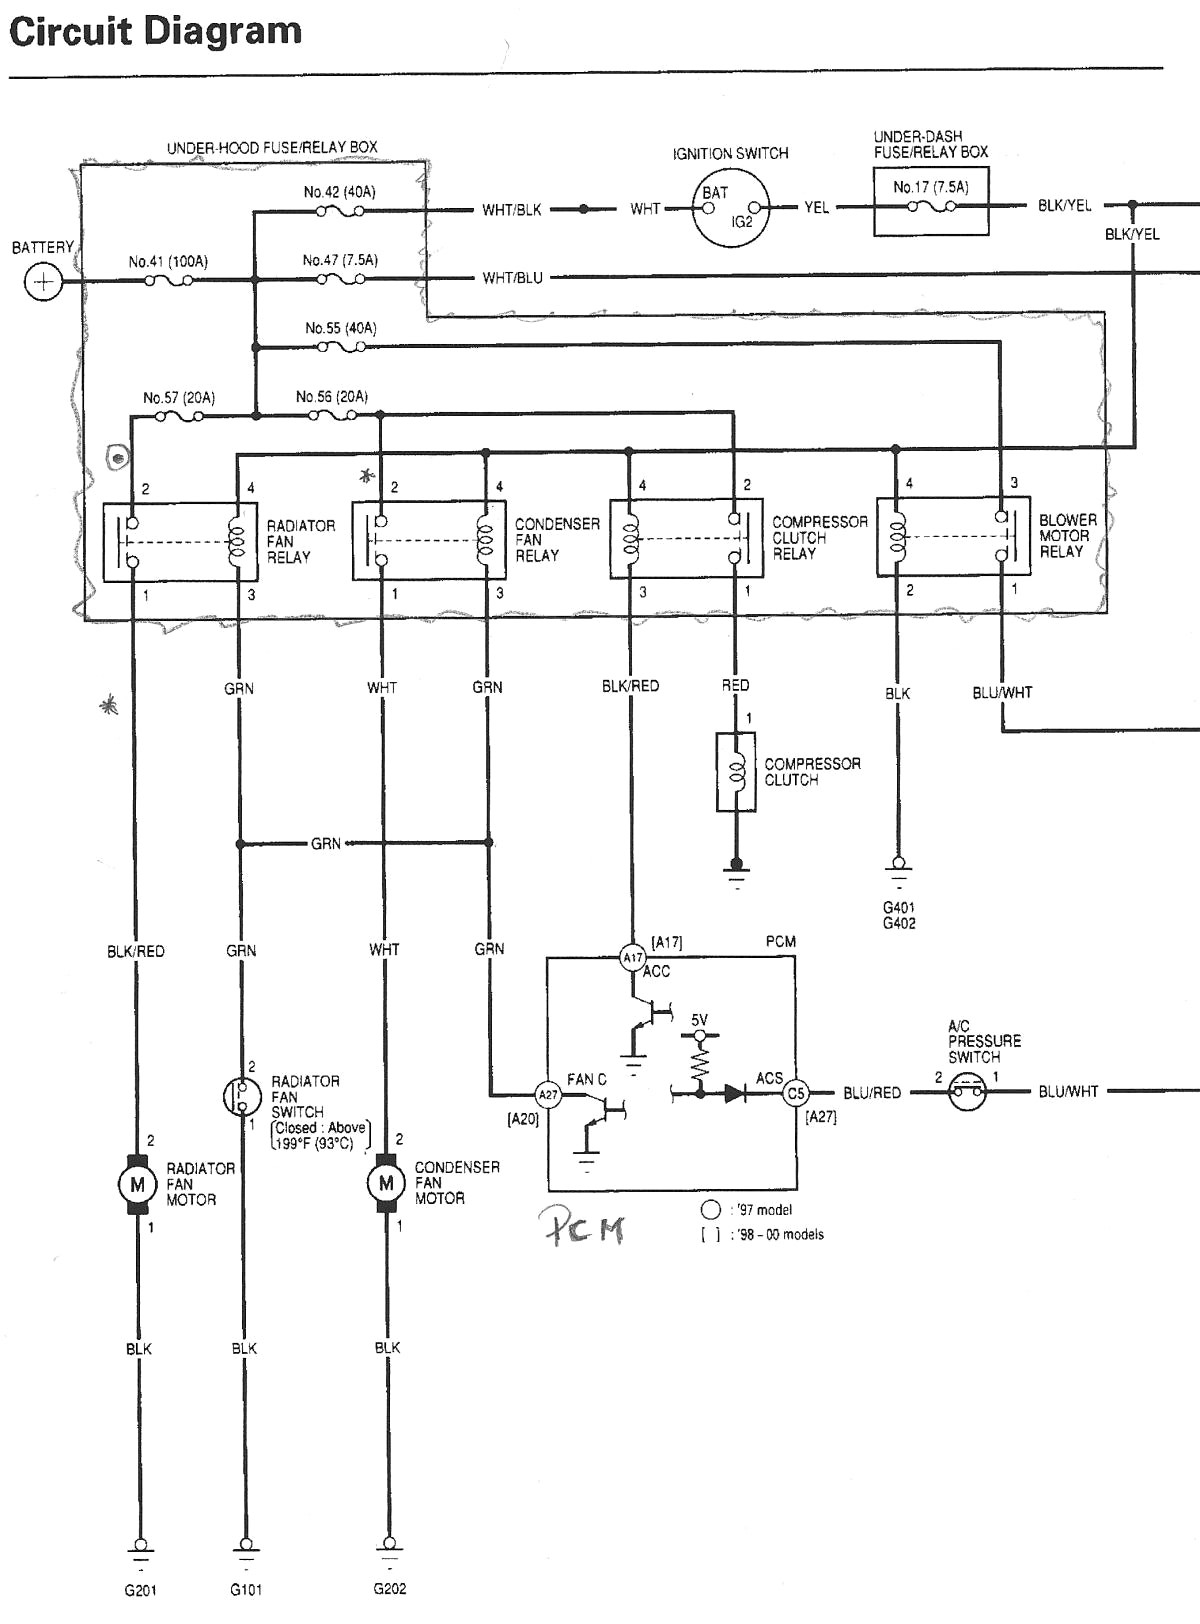 [SCHEMATICS_4HG]  MH_9620] Honda Accord V6 Engine Diagram Schematic Wiring | 98 Accord Wiring Diagram |  | Sequ Inki Socad Emba Mohammedshrine Librar Wiring 101